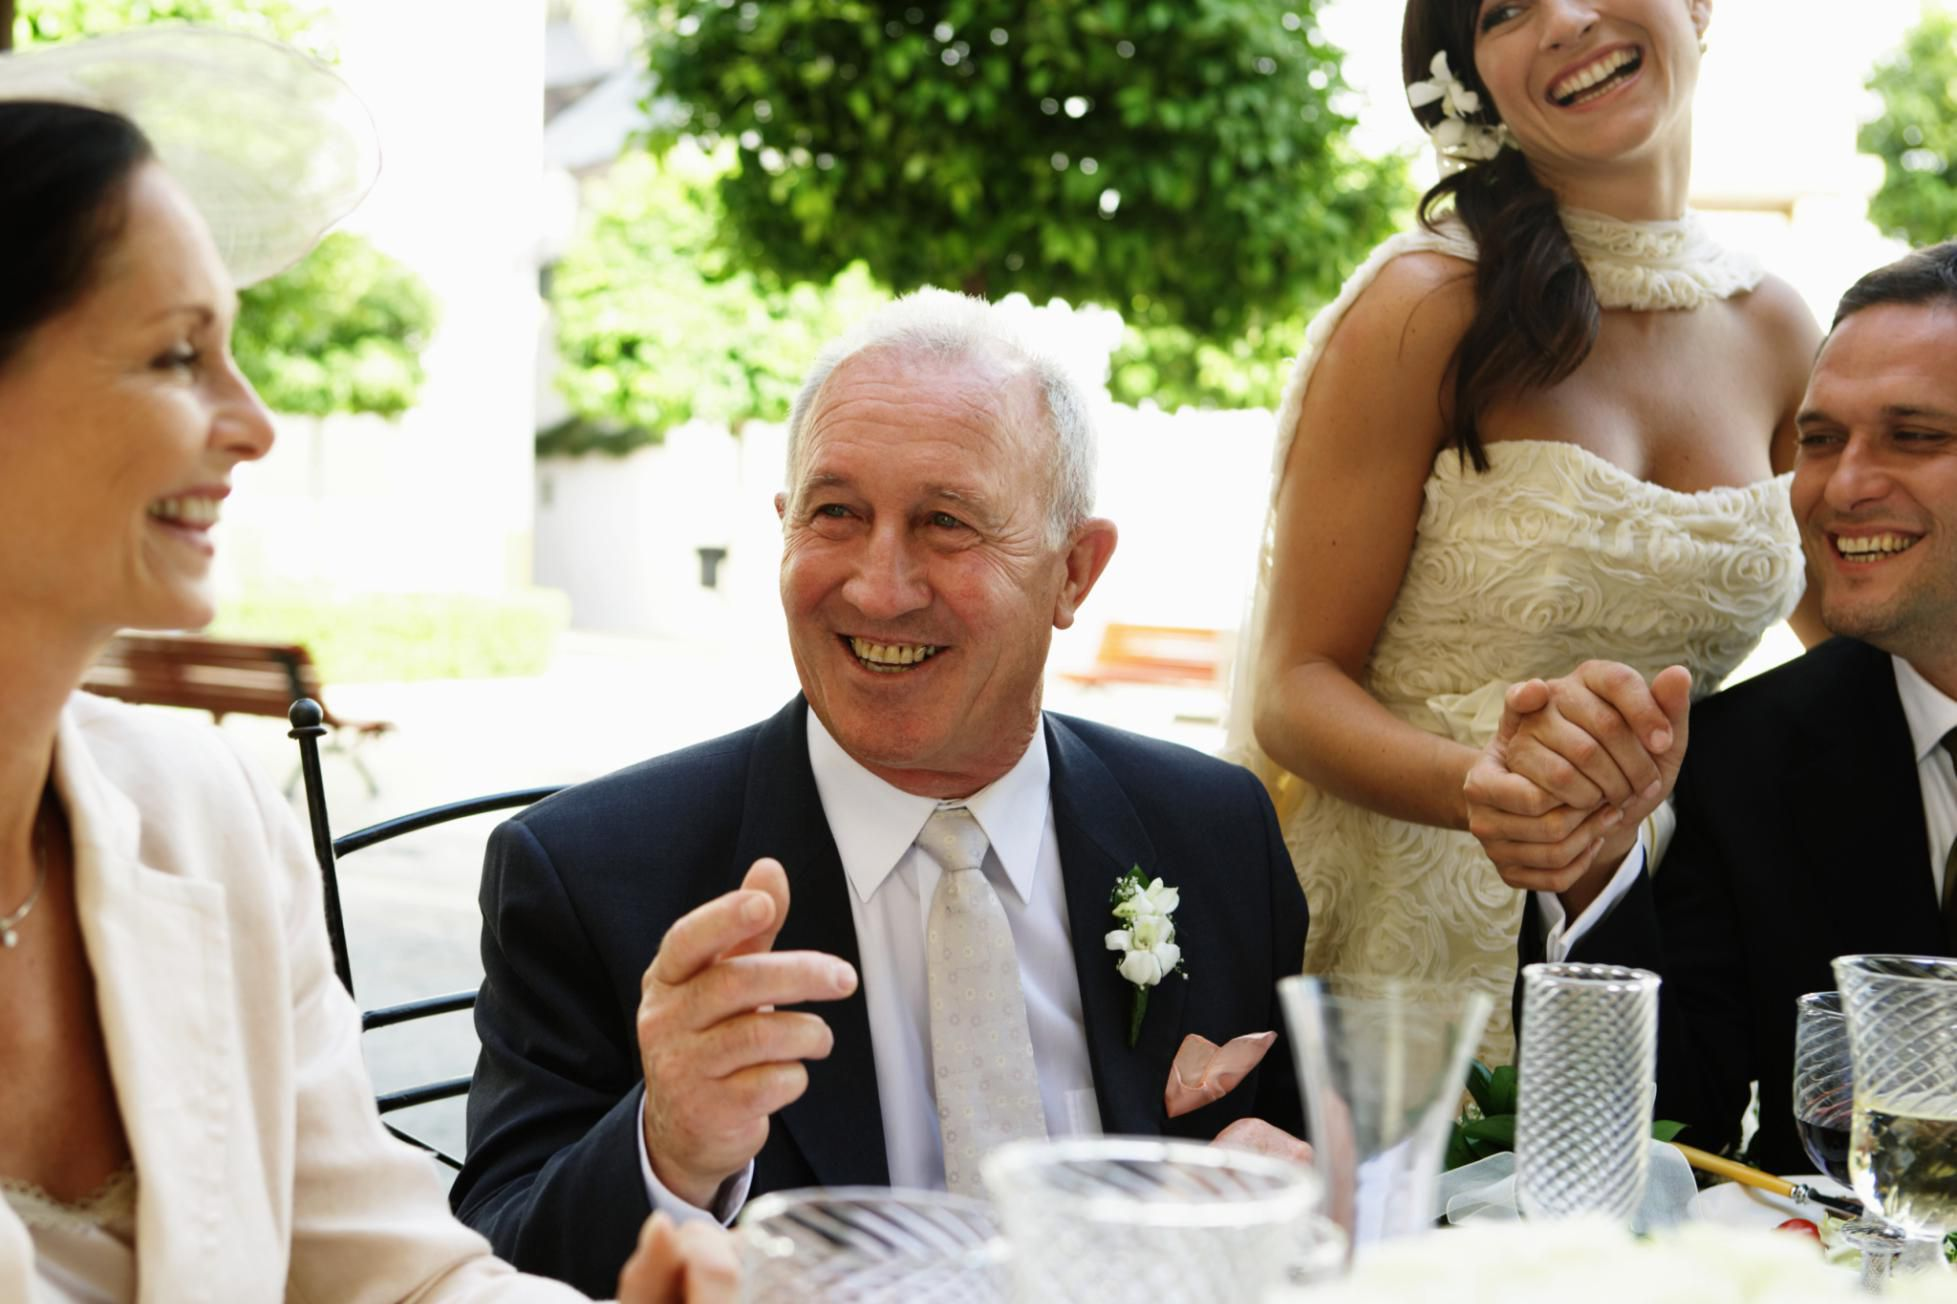 Father of the groom wedding toasts - 5 Wedding Reception Planning Tips For The Father Of The Bride